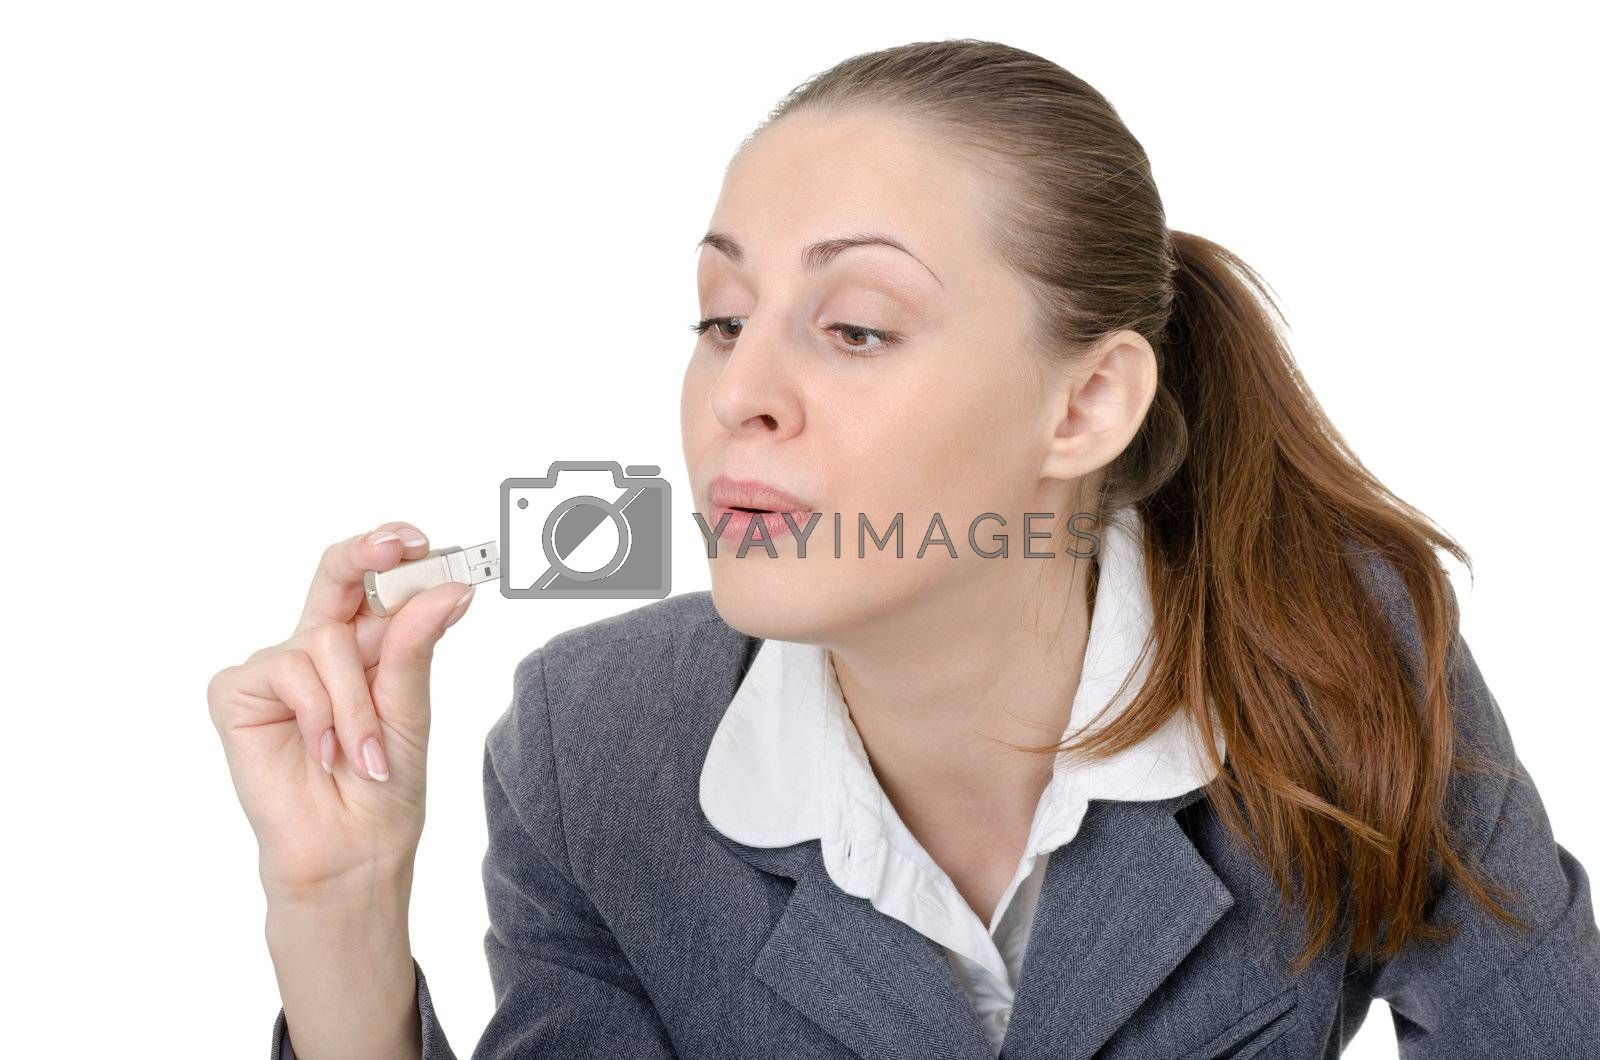 office manager, a woman closely examining USB flash drive